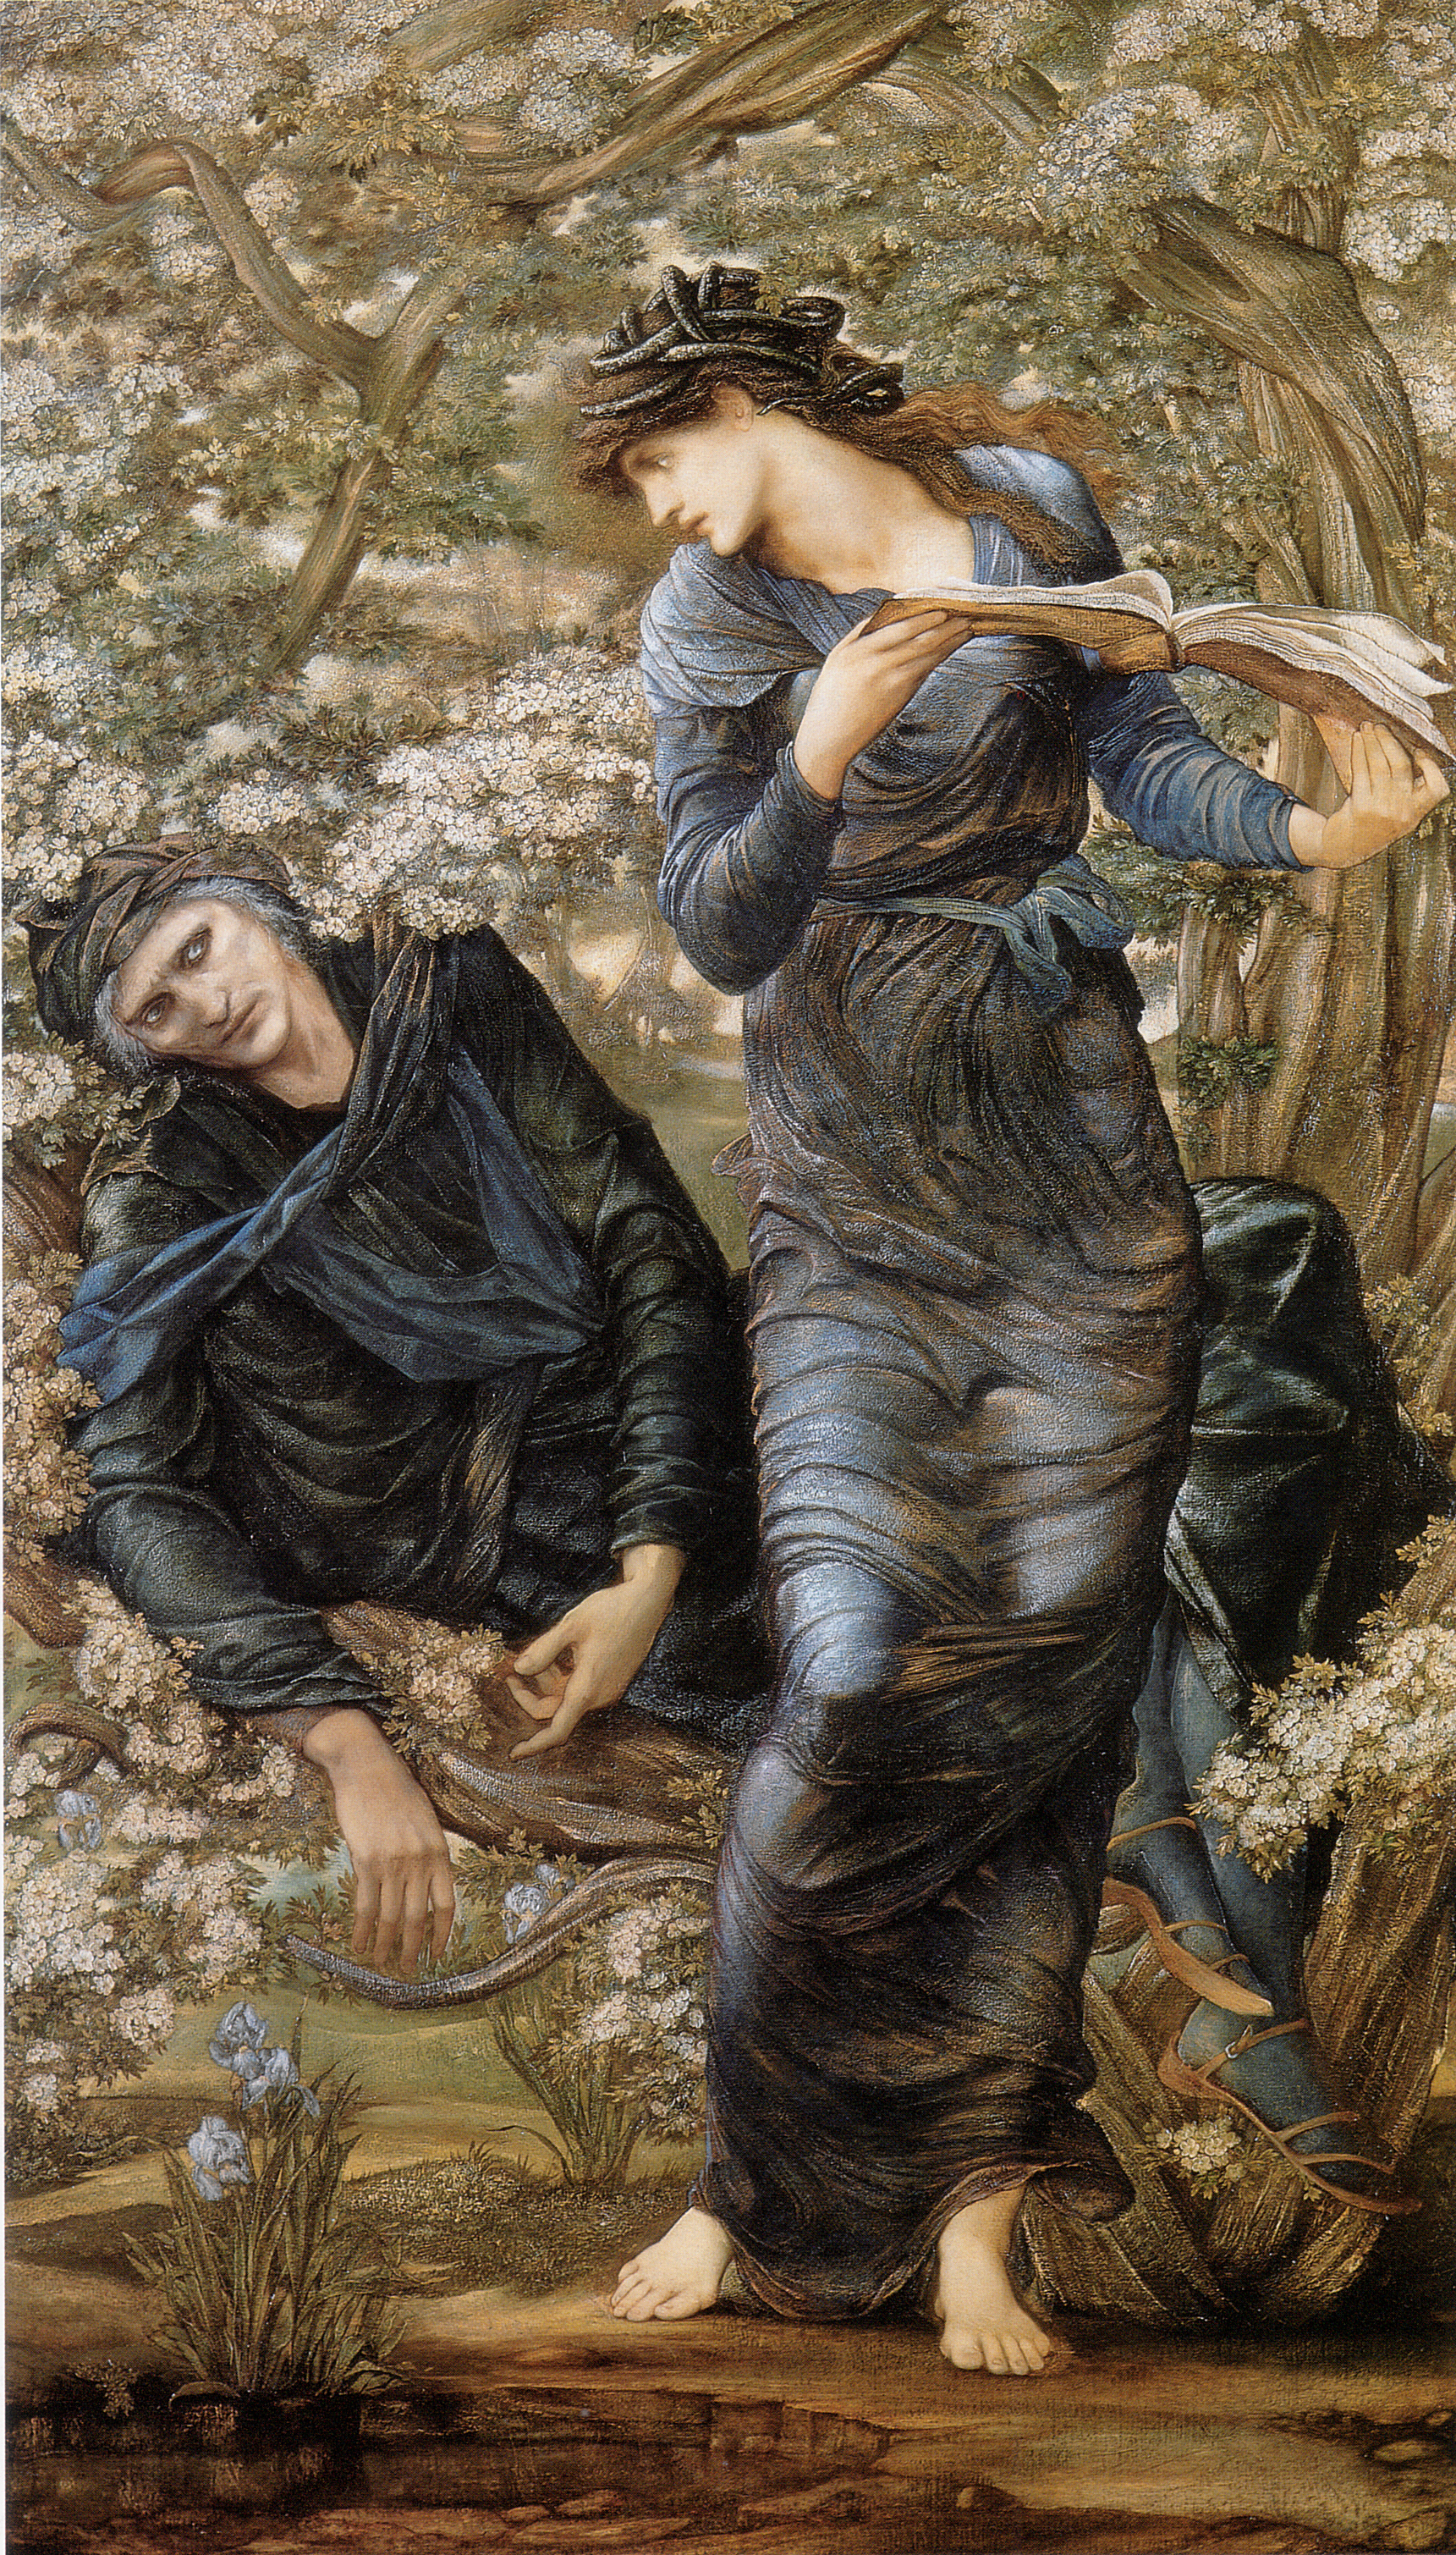 The Beguiling of Merlin, 1874